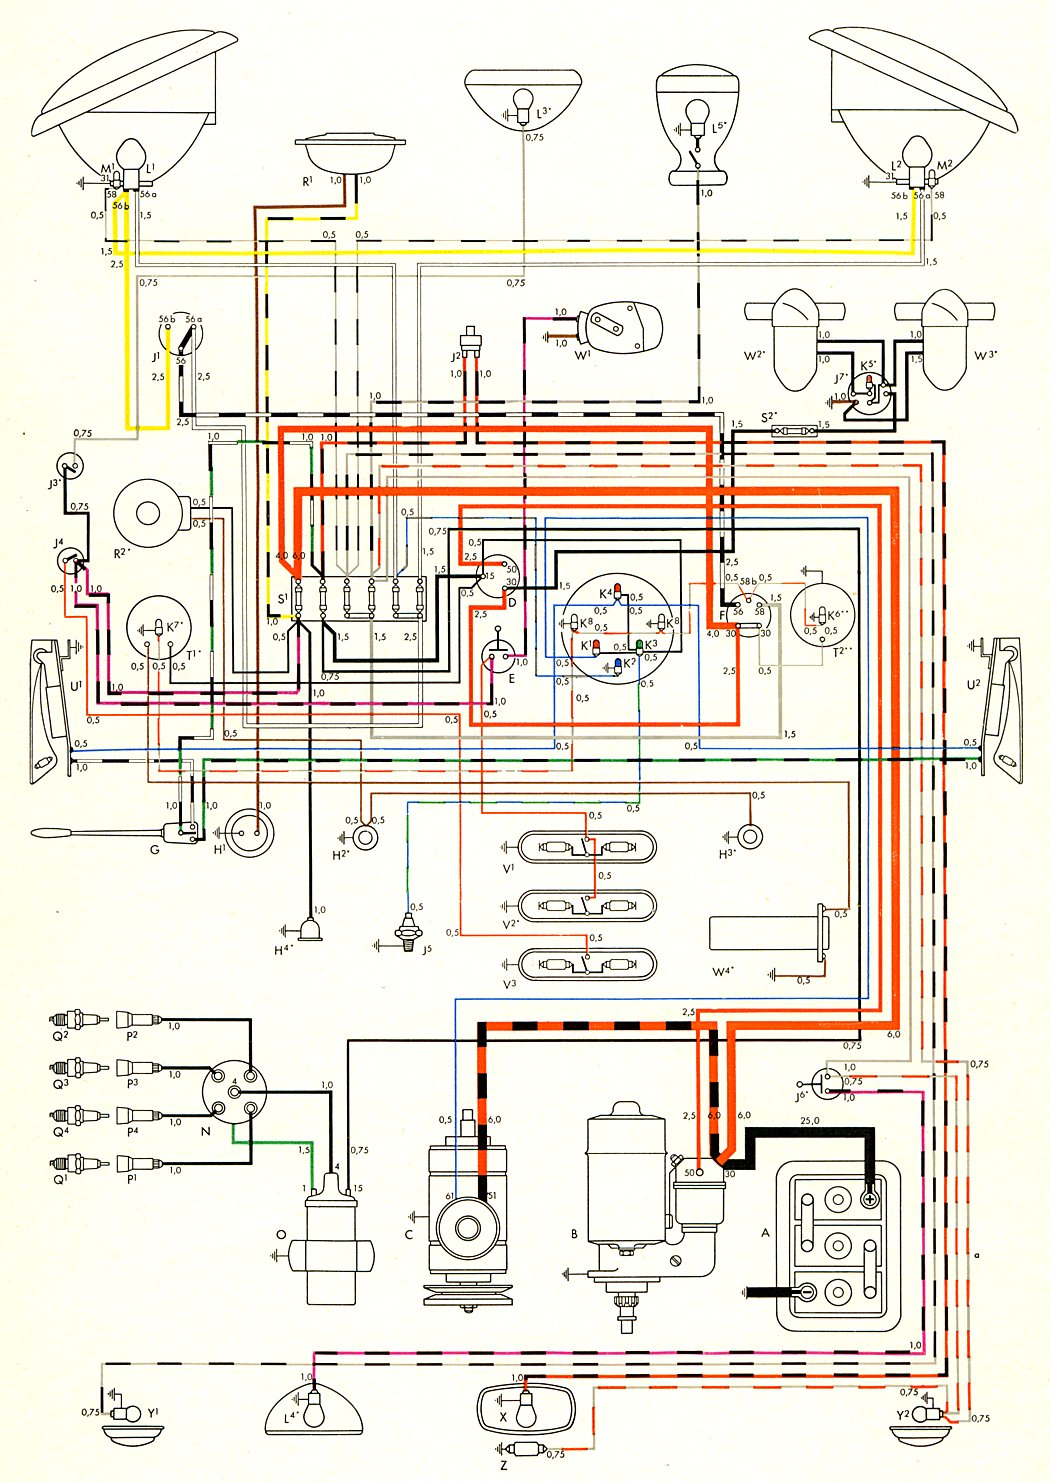 1967 vw beetle engine diagram thesamba.com :: type 2 wiring diagrams #3